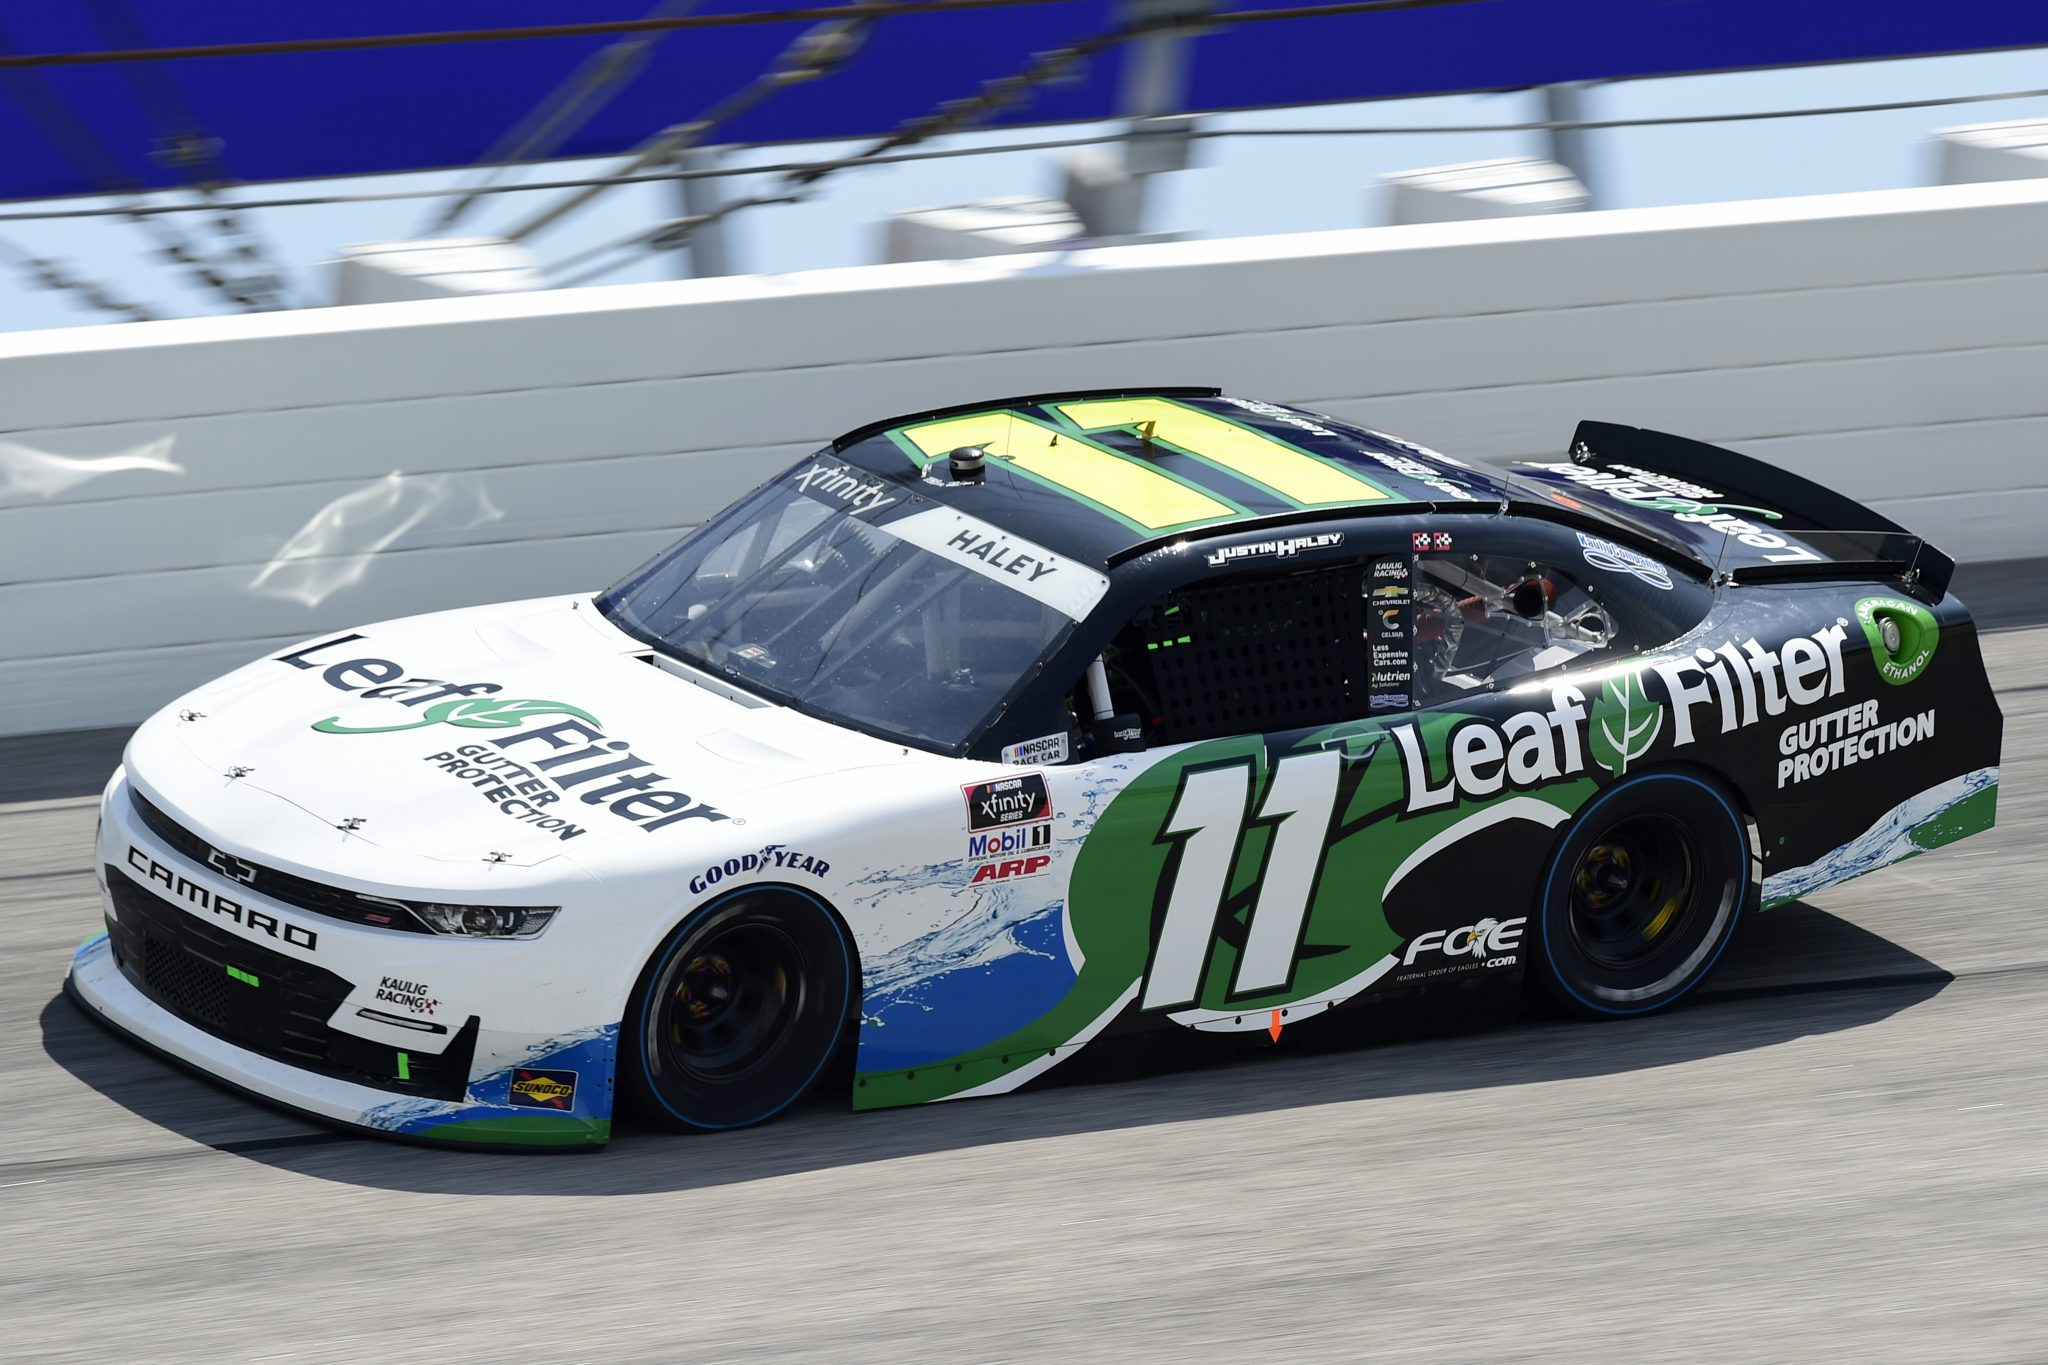 DARLINGTON, SOUTH CAROLINA - SEPTEMBER 05: Justin Haley, driver of the #11 LeafFilter Gutter Protection Chevrolet, drives during the NASCAR Xfinity Series Sport Clips Haircuts VFW 200 at Darlington Raceway on September 05, 2020 in Darlington, South Carolina. (Photo by Jared C. Tilton/Getty Images)   Getty Images